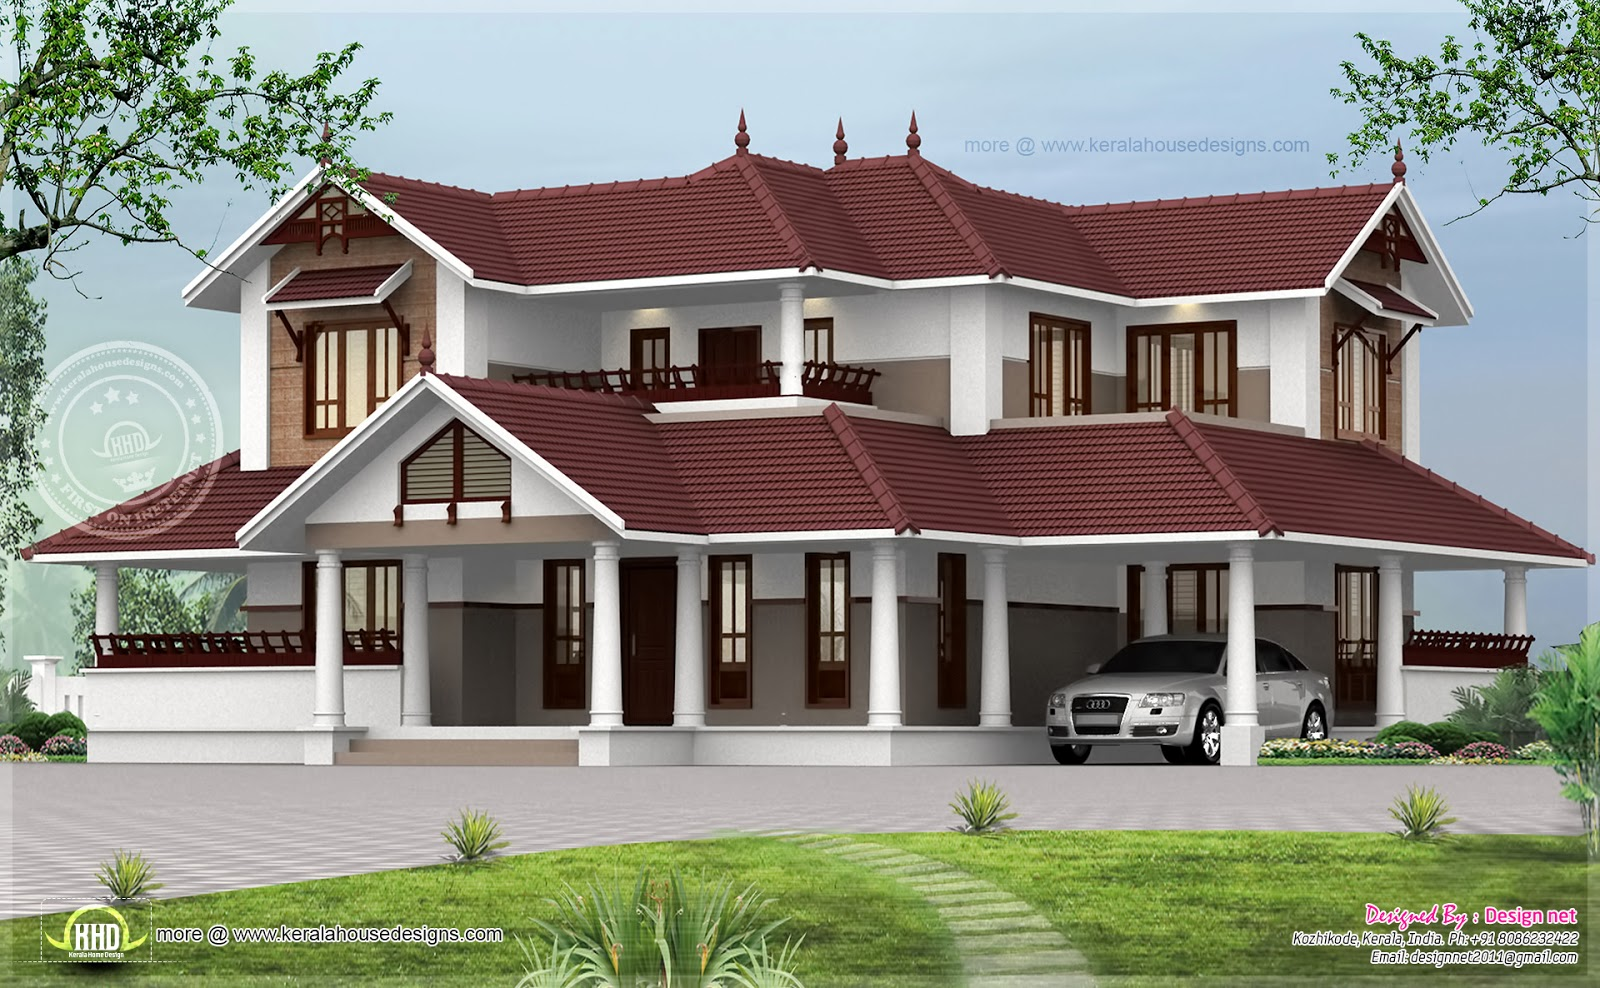 House Style Roof : Kerala style sloping roof home exterior house design plans